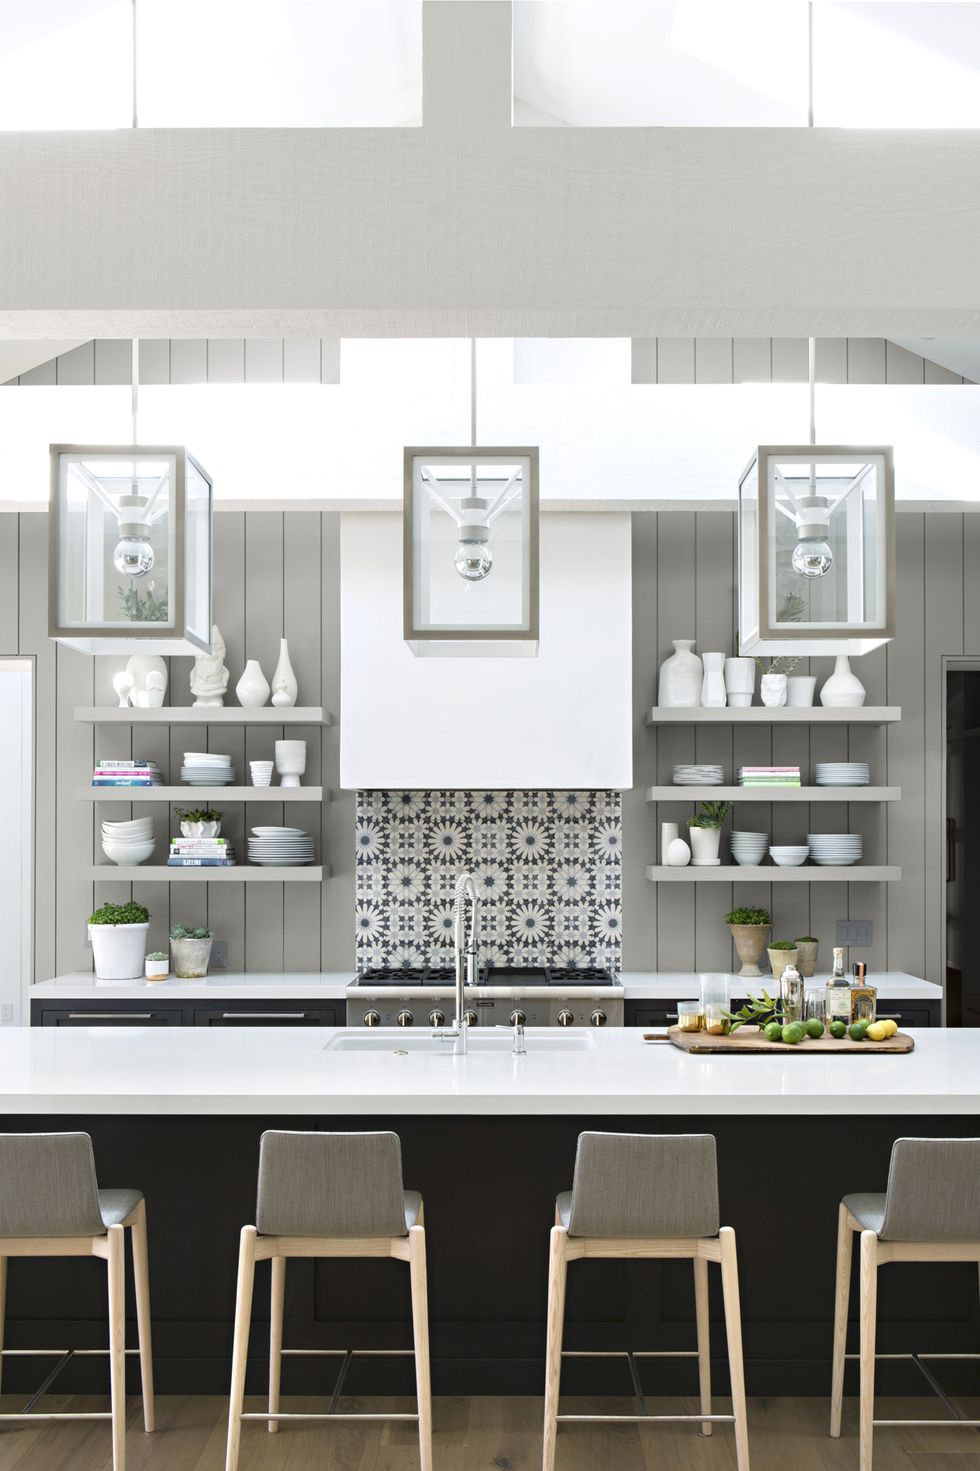 Gray kitchen with light countertop and shelves with lighting